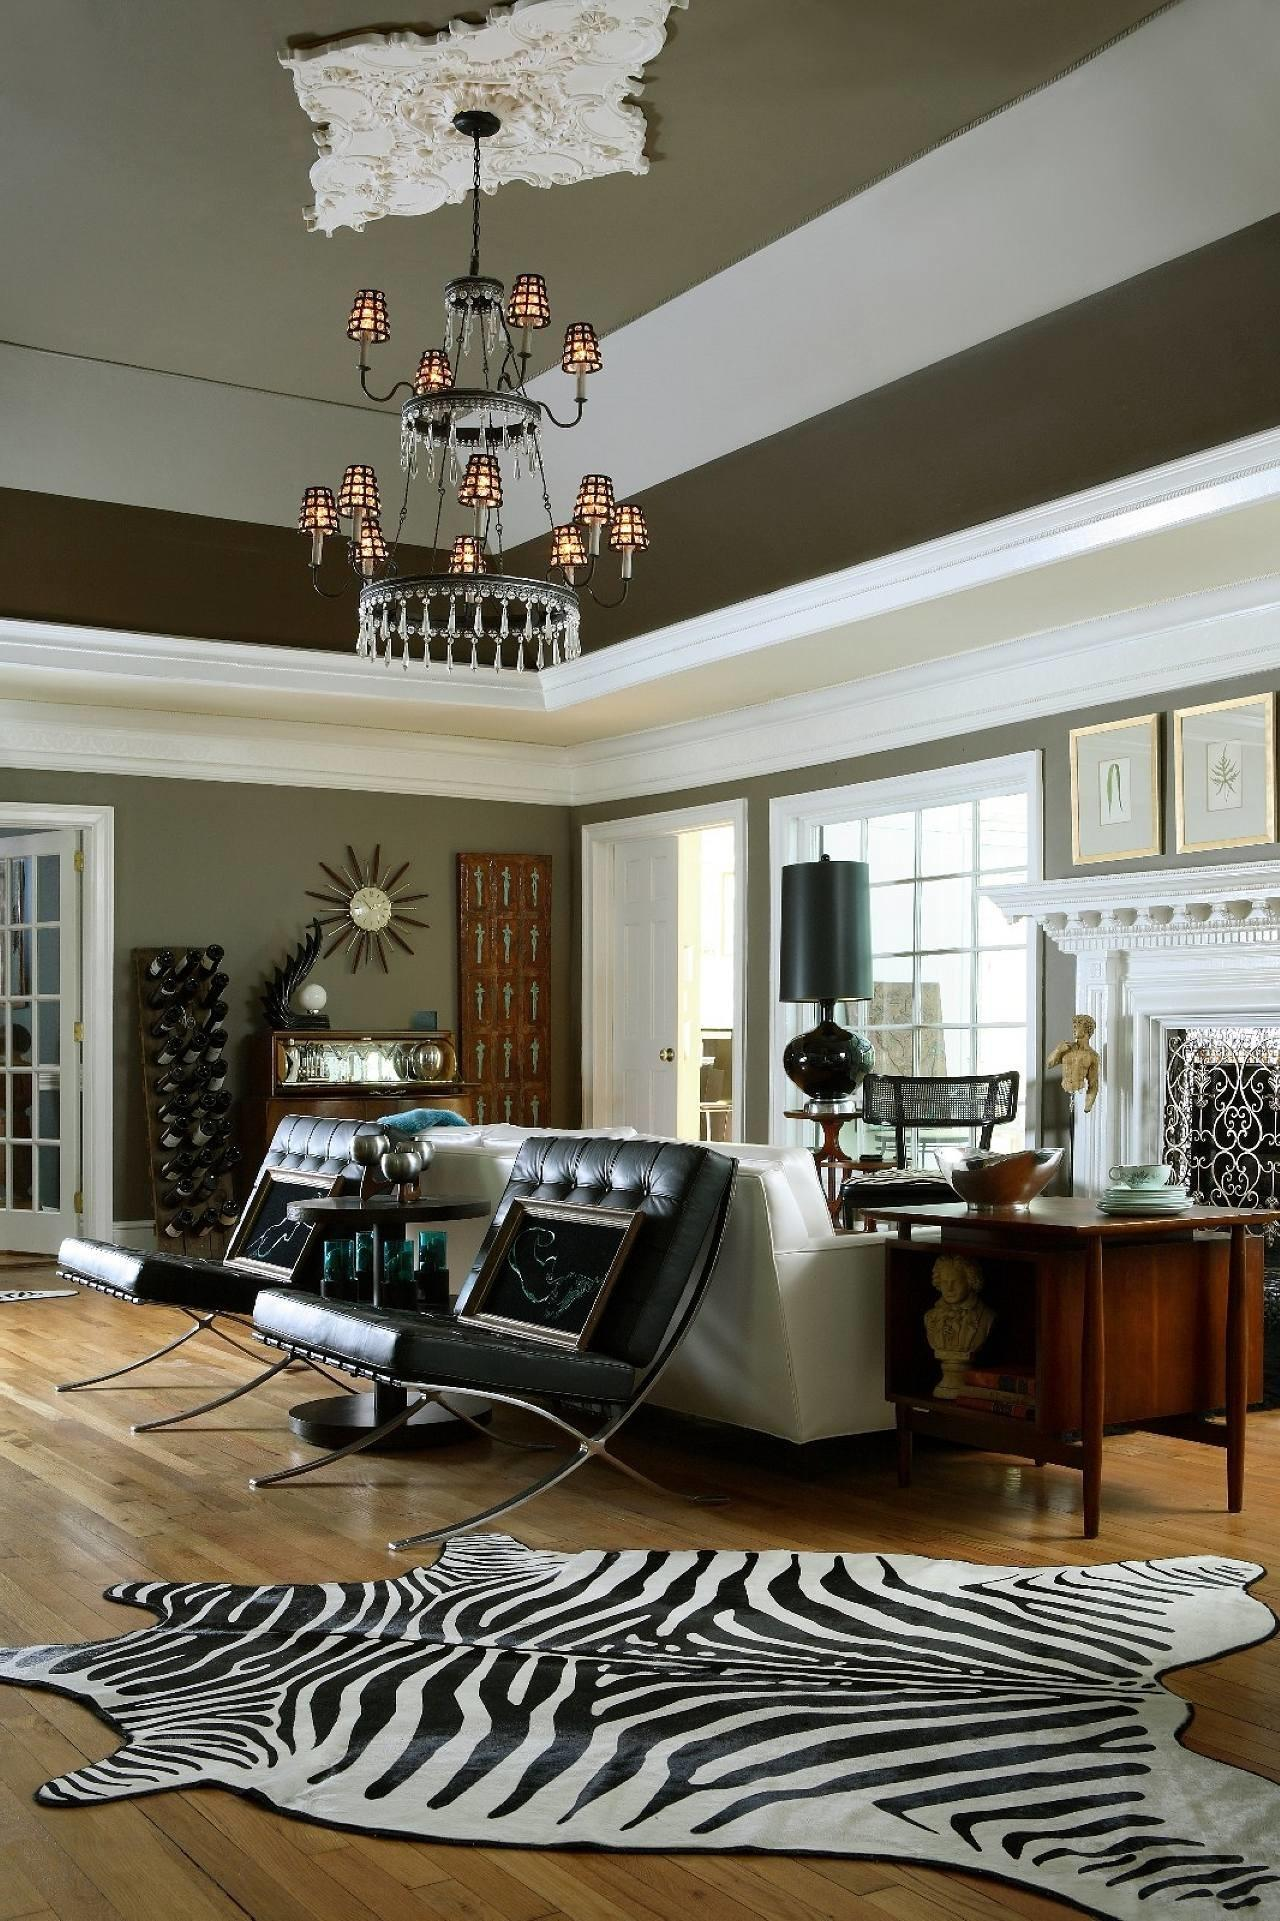 Eclectic Style Interior Design Ideas